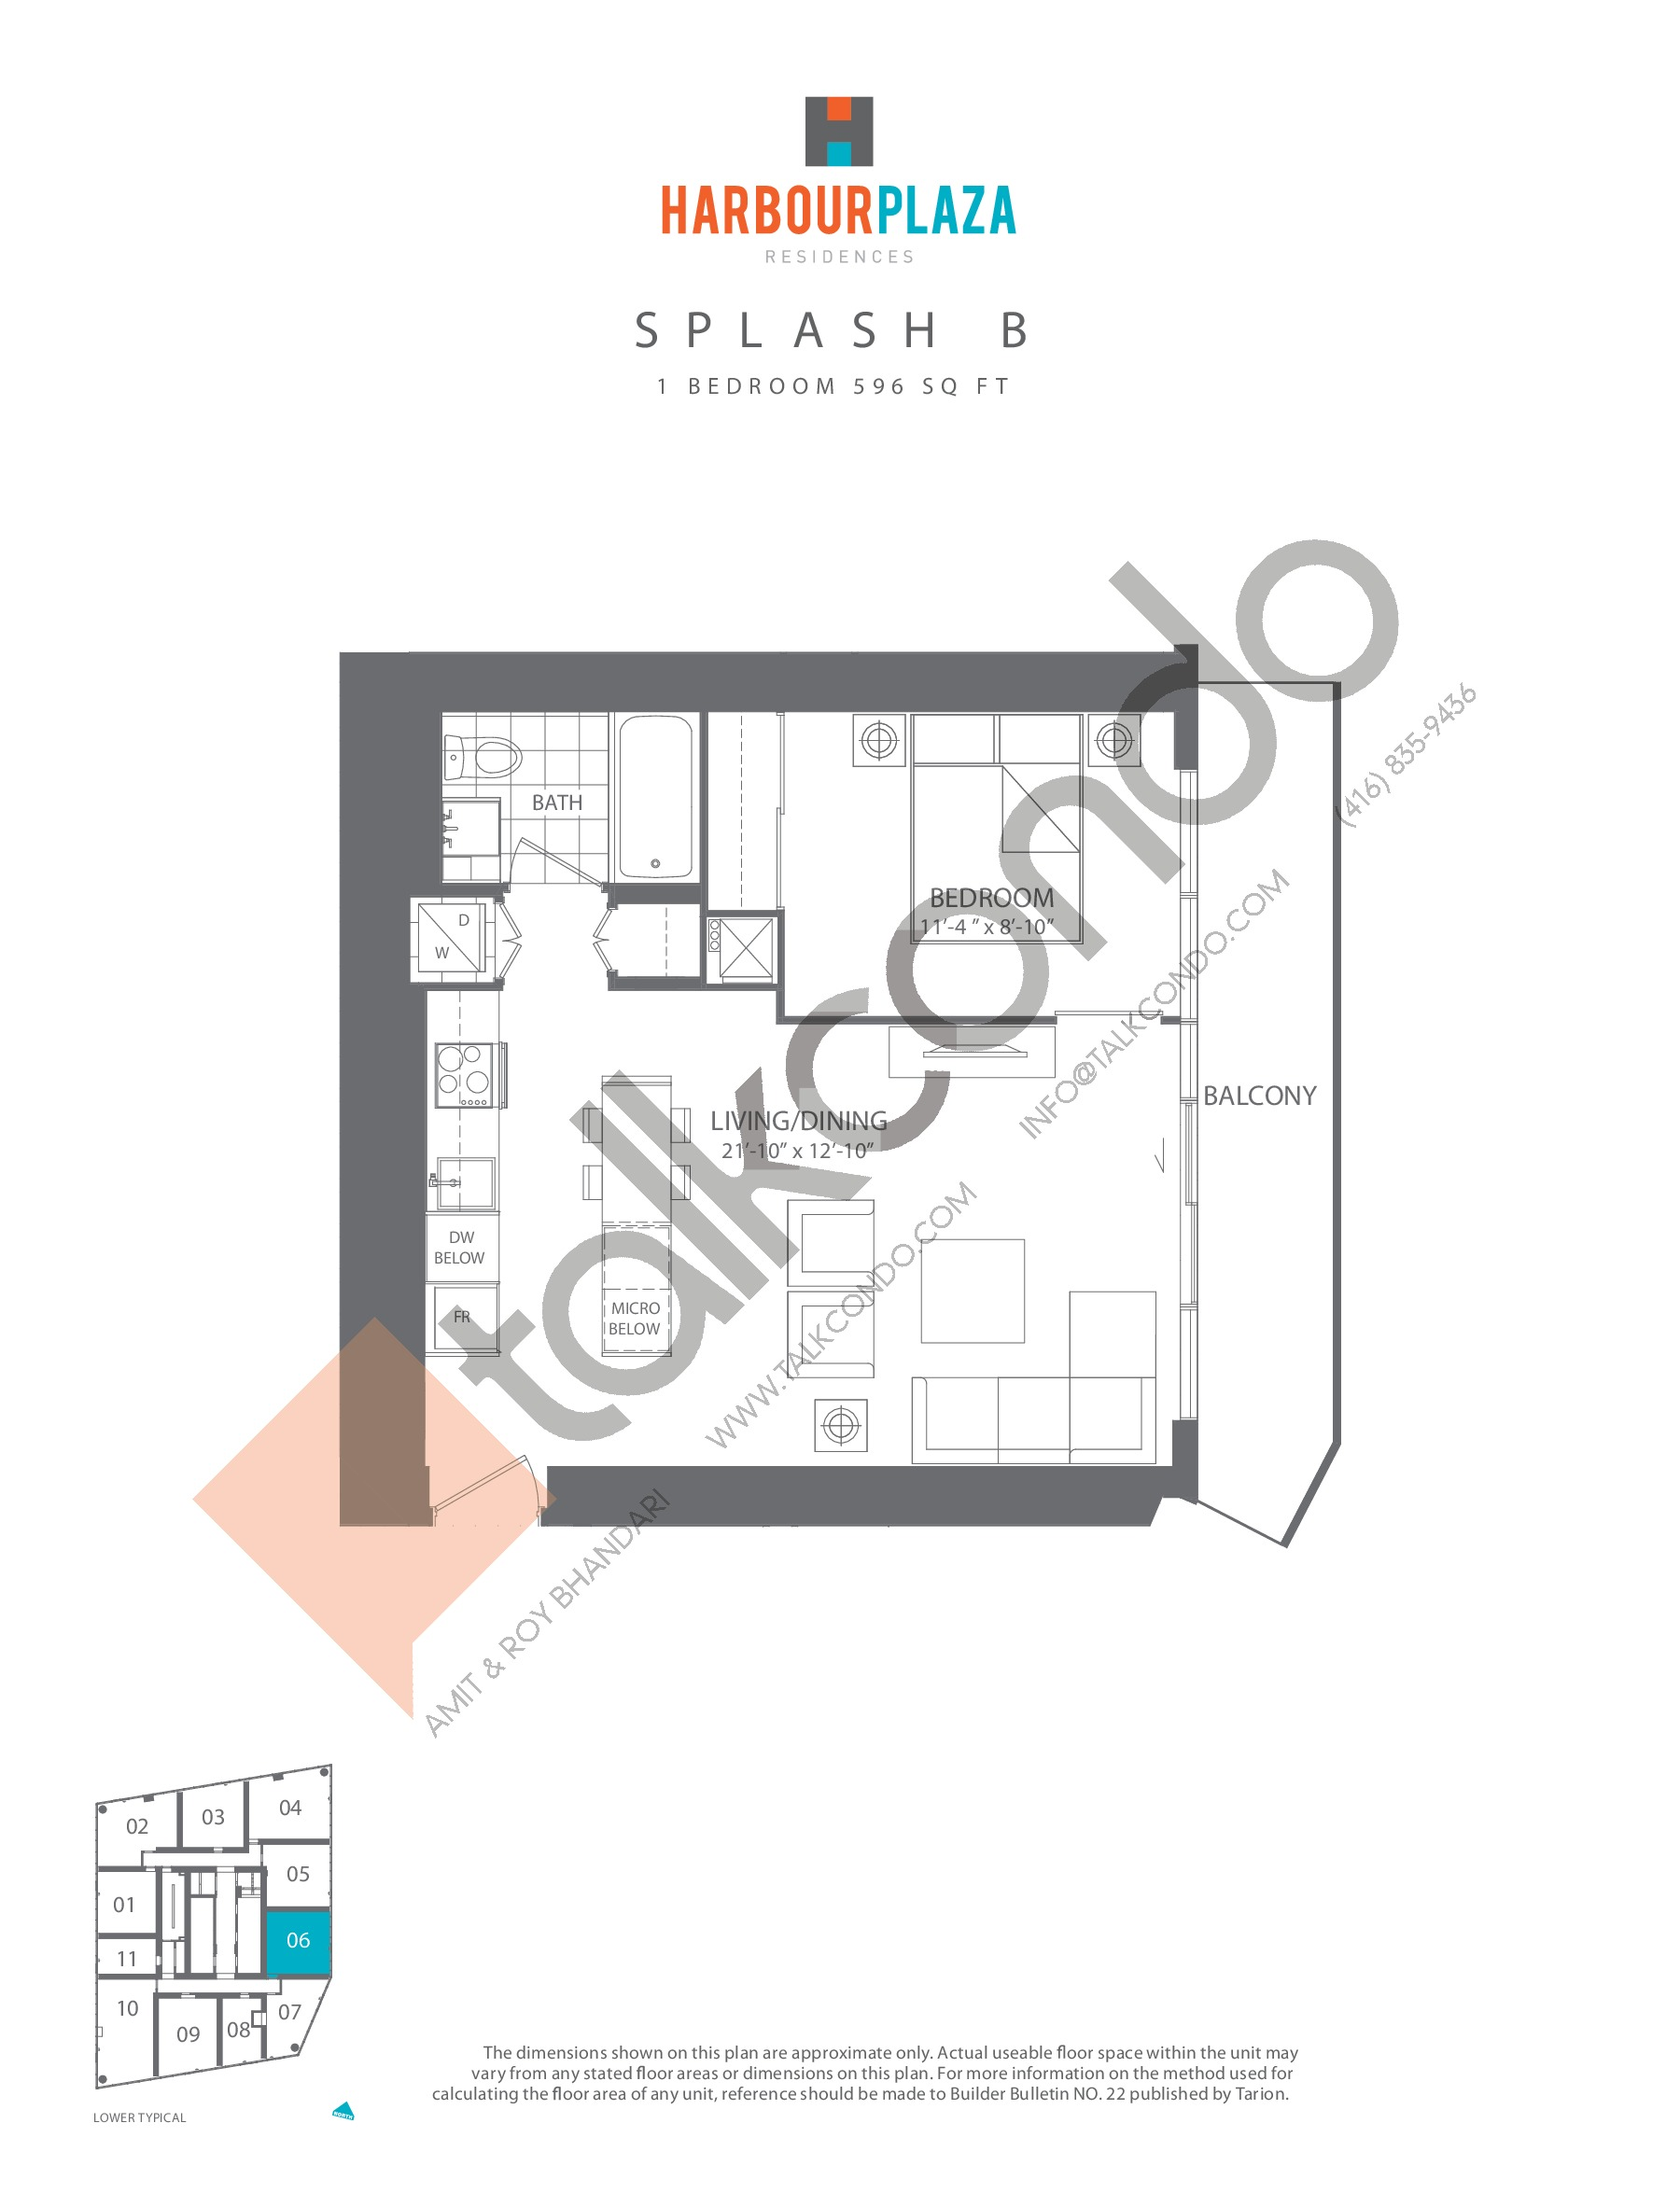 Splash B Floor Plan at Harbour Plaza Residences - 596 sq.ft